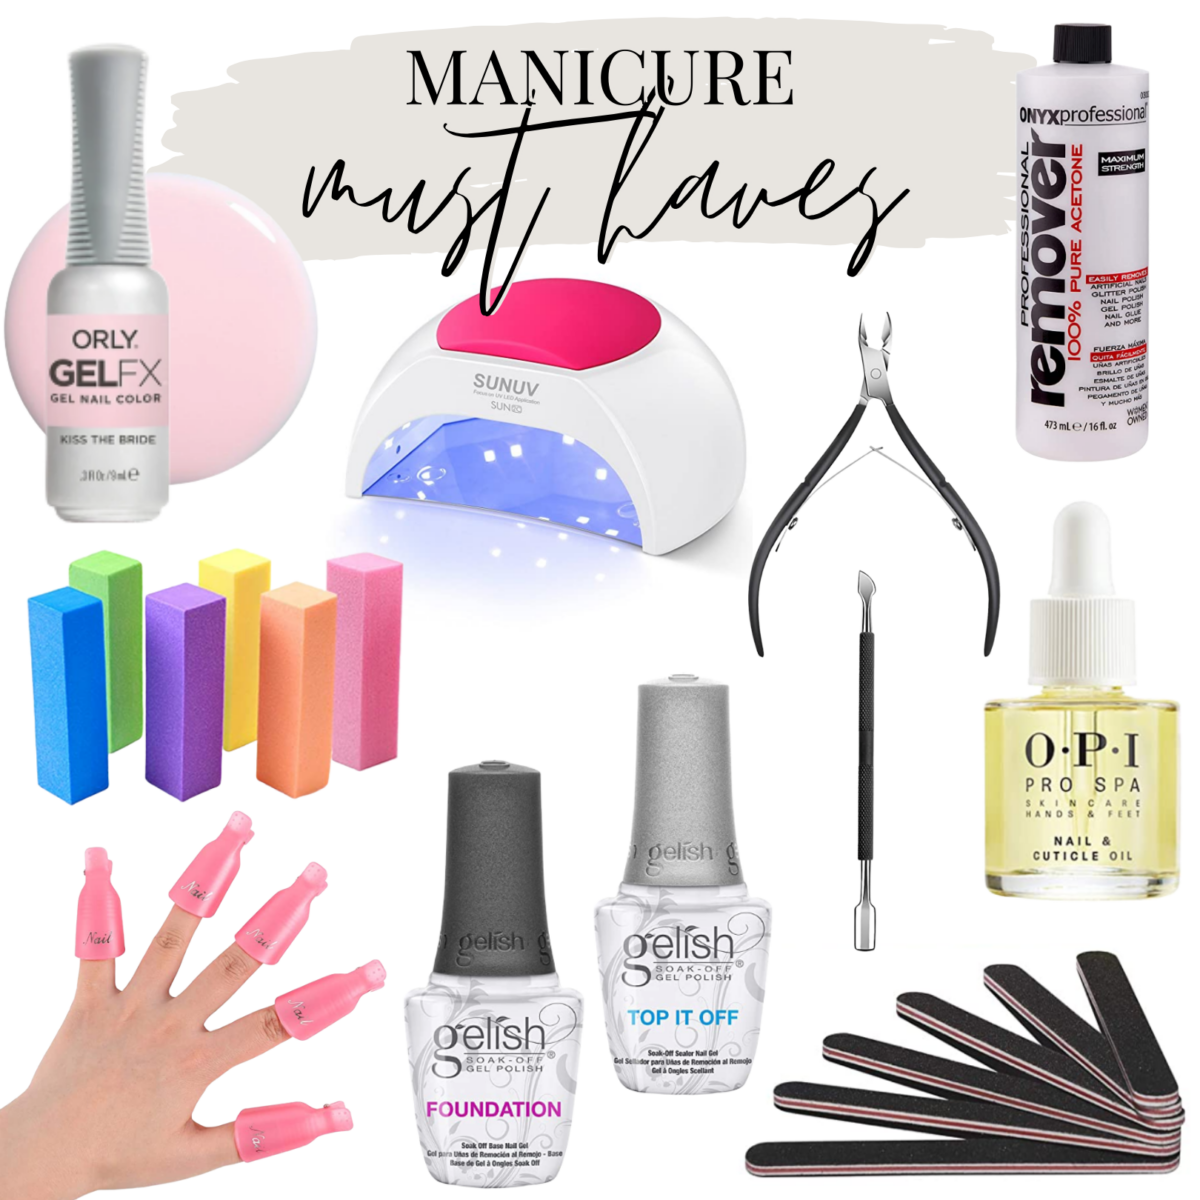 At Home Gel Manicure by popular Houston beauty blog, Haute and Humid: collage image of Orly GEL FX, SunUV, cuticle clippers, cuticle pusher, acetone nail polish remover, nail file, nail buffer, Gelish foundation, Gelish top it off, OPI pro spa nail and cuticle oil.